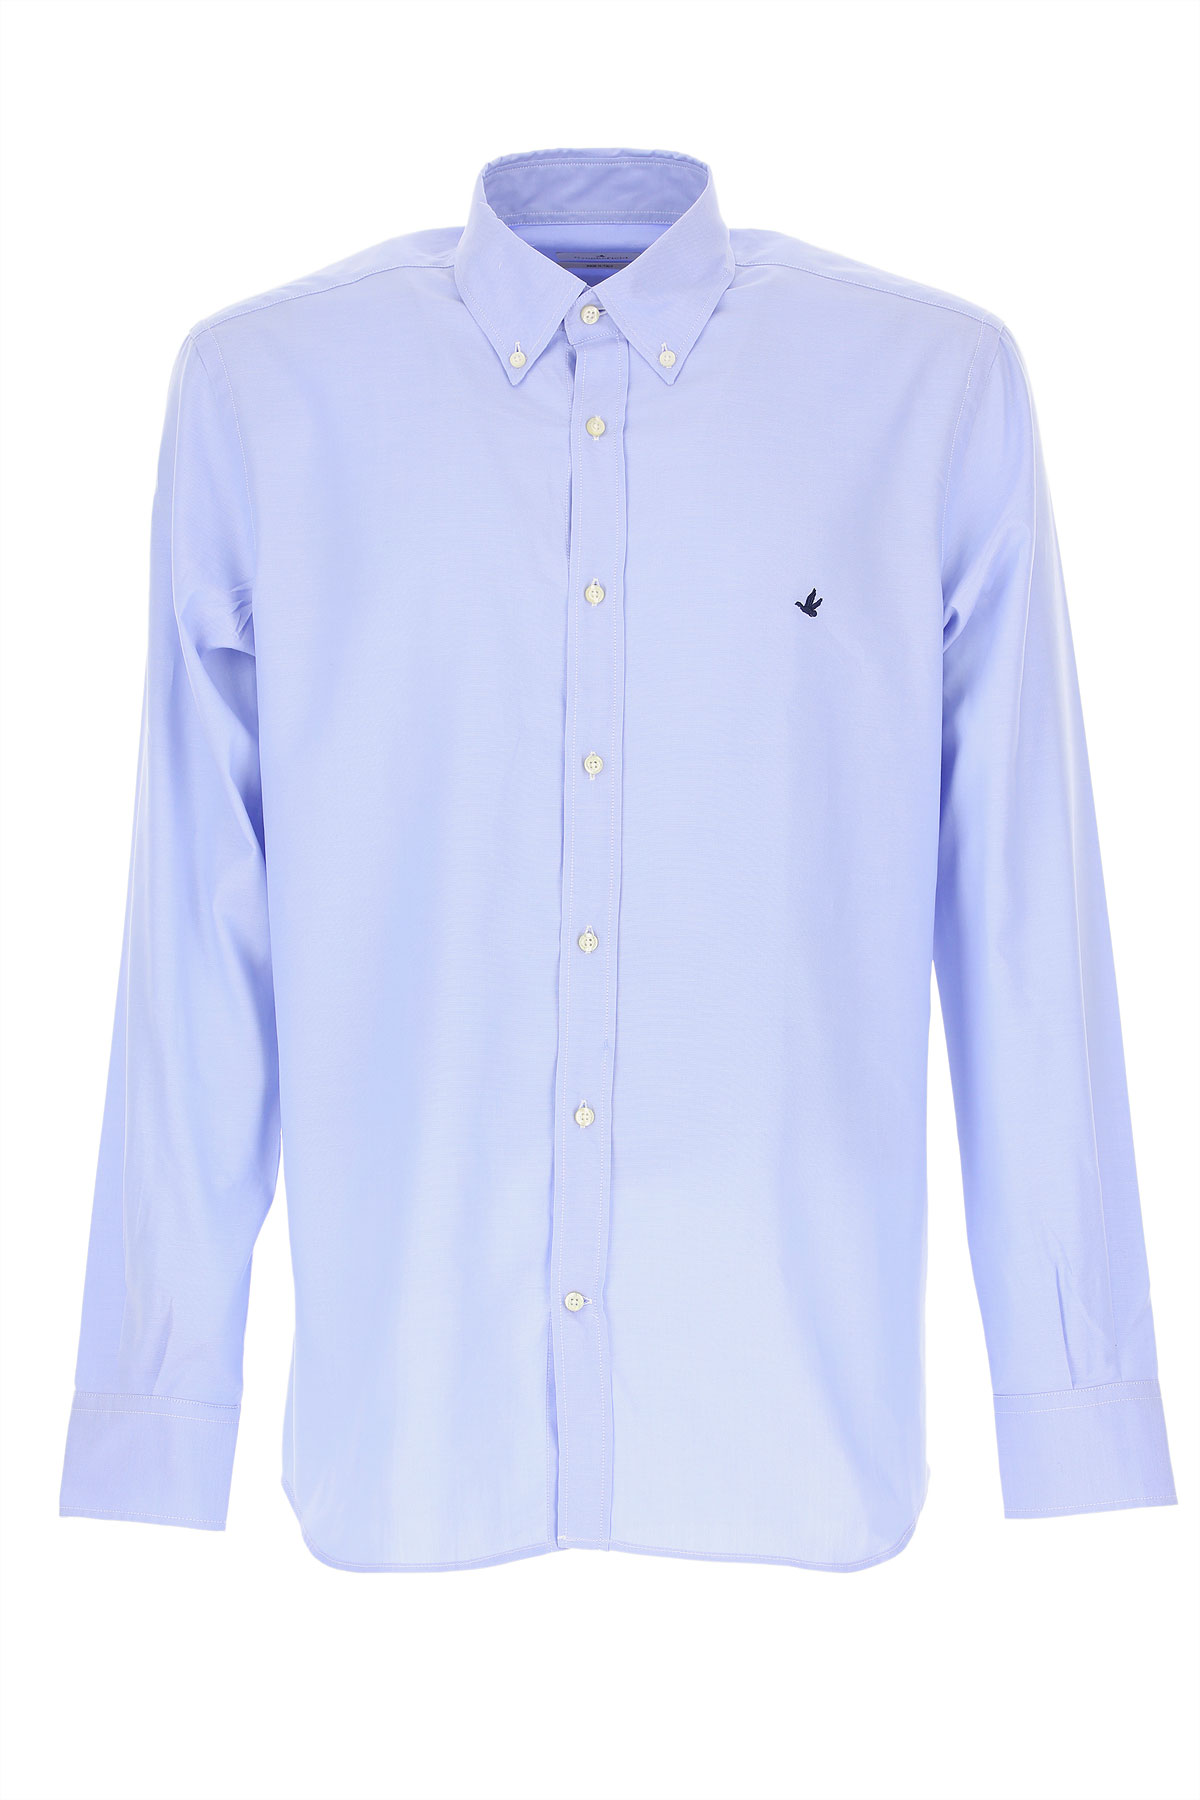 Brooksfield Shirt for Men, Skyblue, Cotton, 2019, 15.5 16 17.5